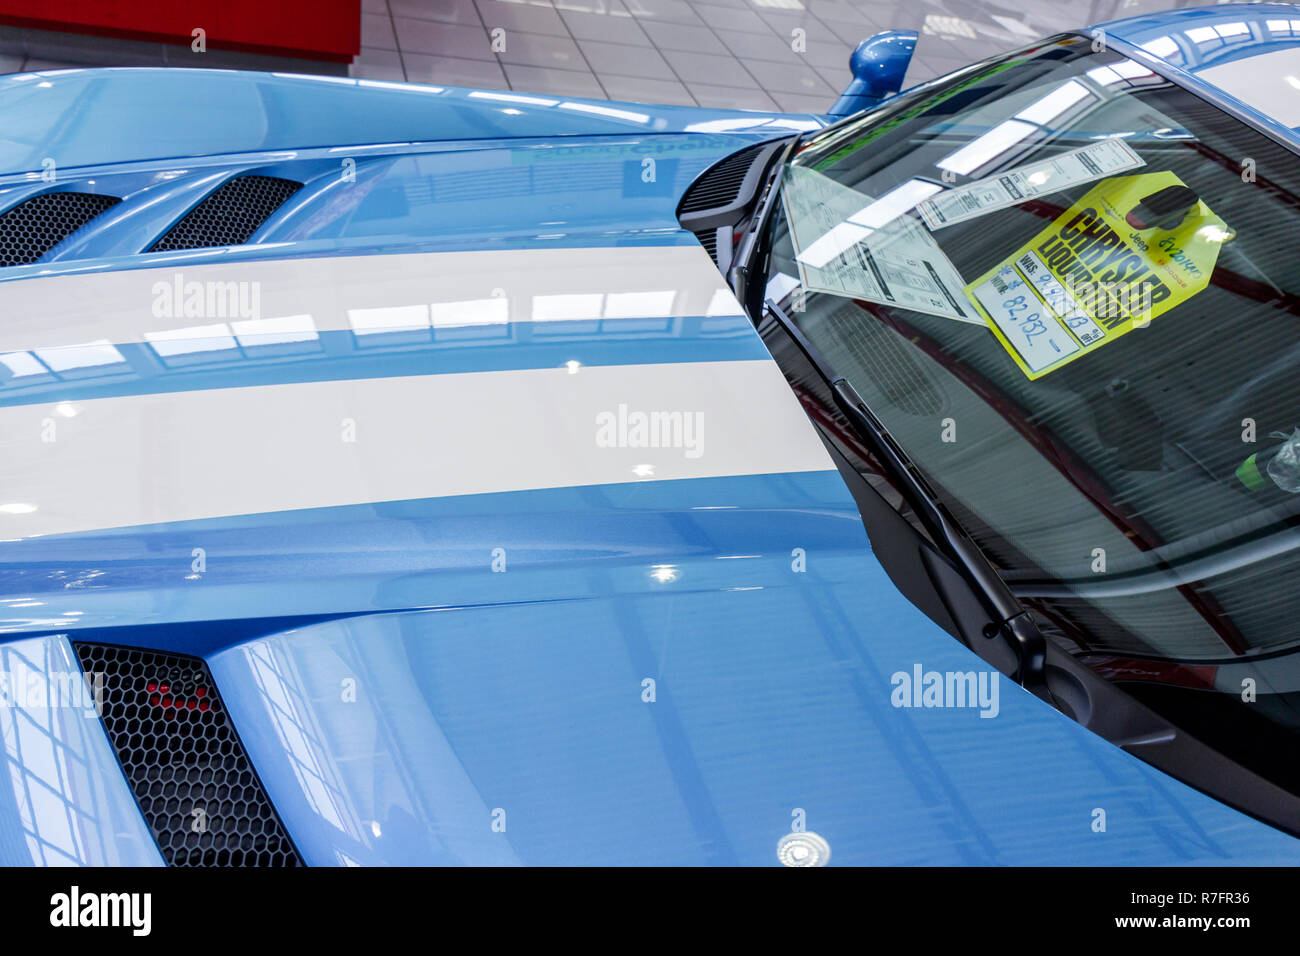 chrysler dodge viper stock photos chrysler dodge viper stock images alamy. Black Bedroom Furniture Sets. Home Design Ideas